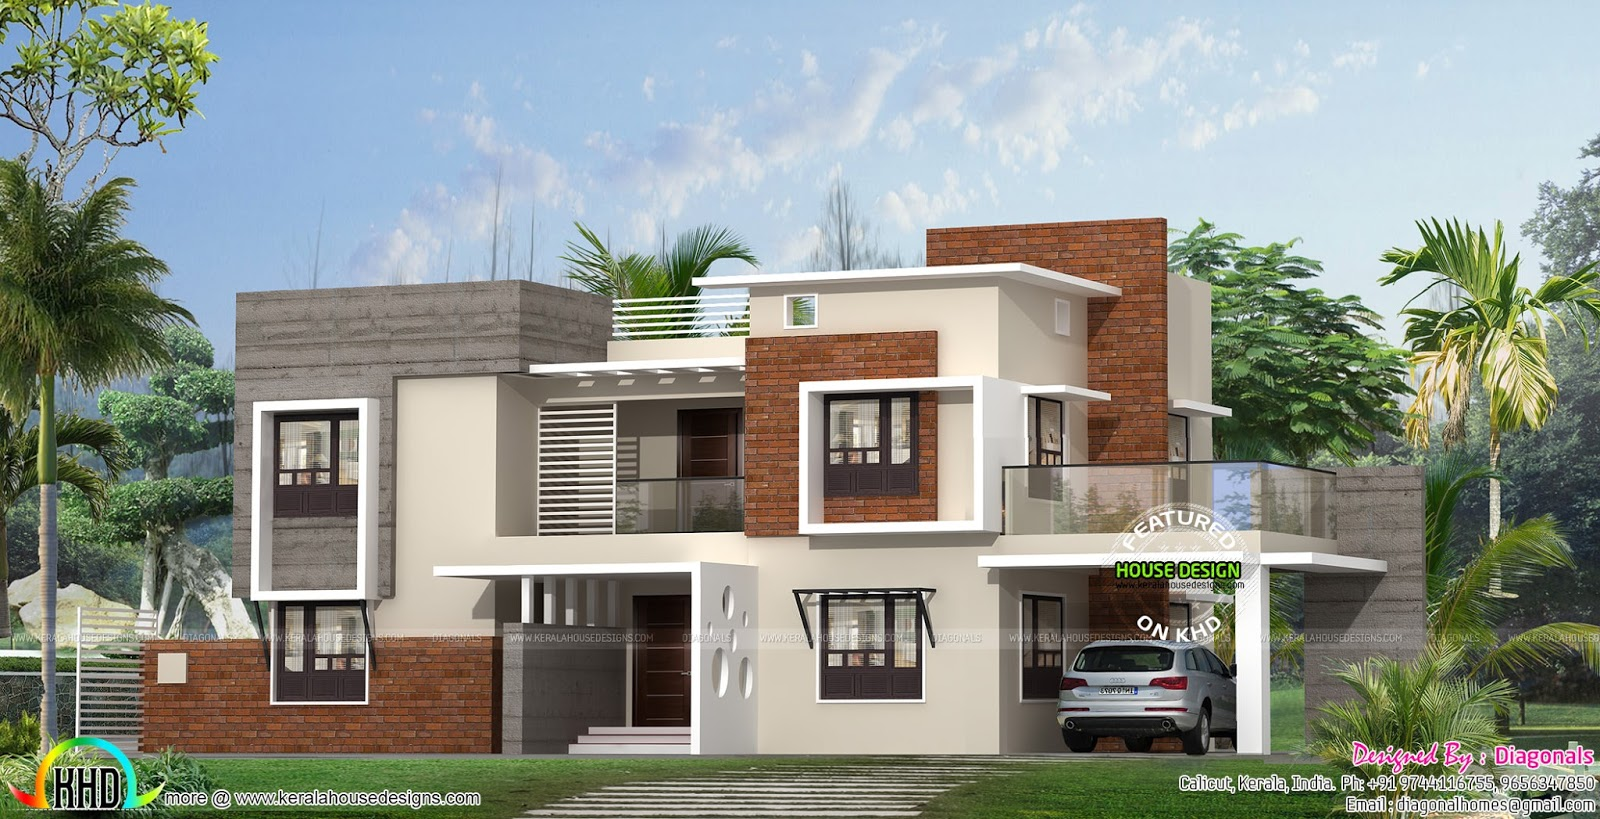 Box model modern flat roof home plan kerala home design for Modern box house design